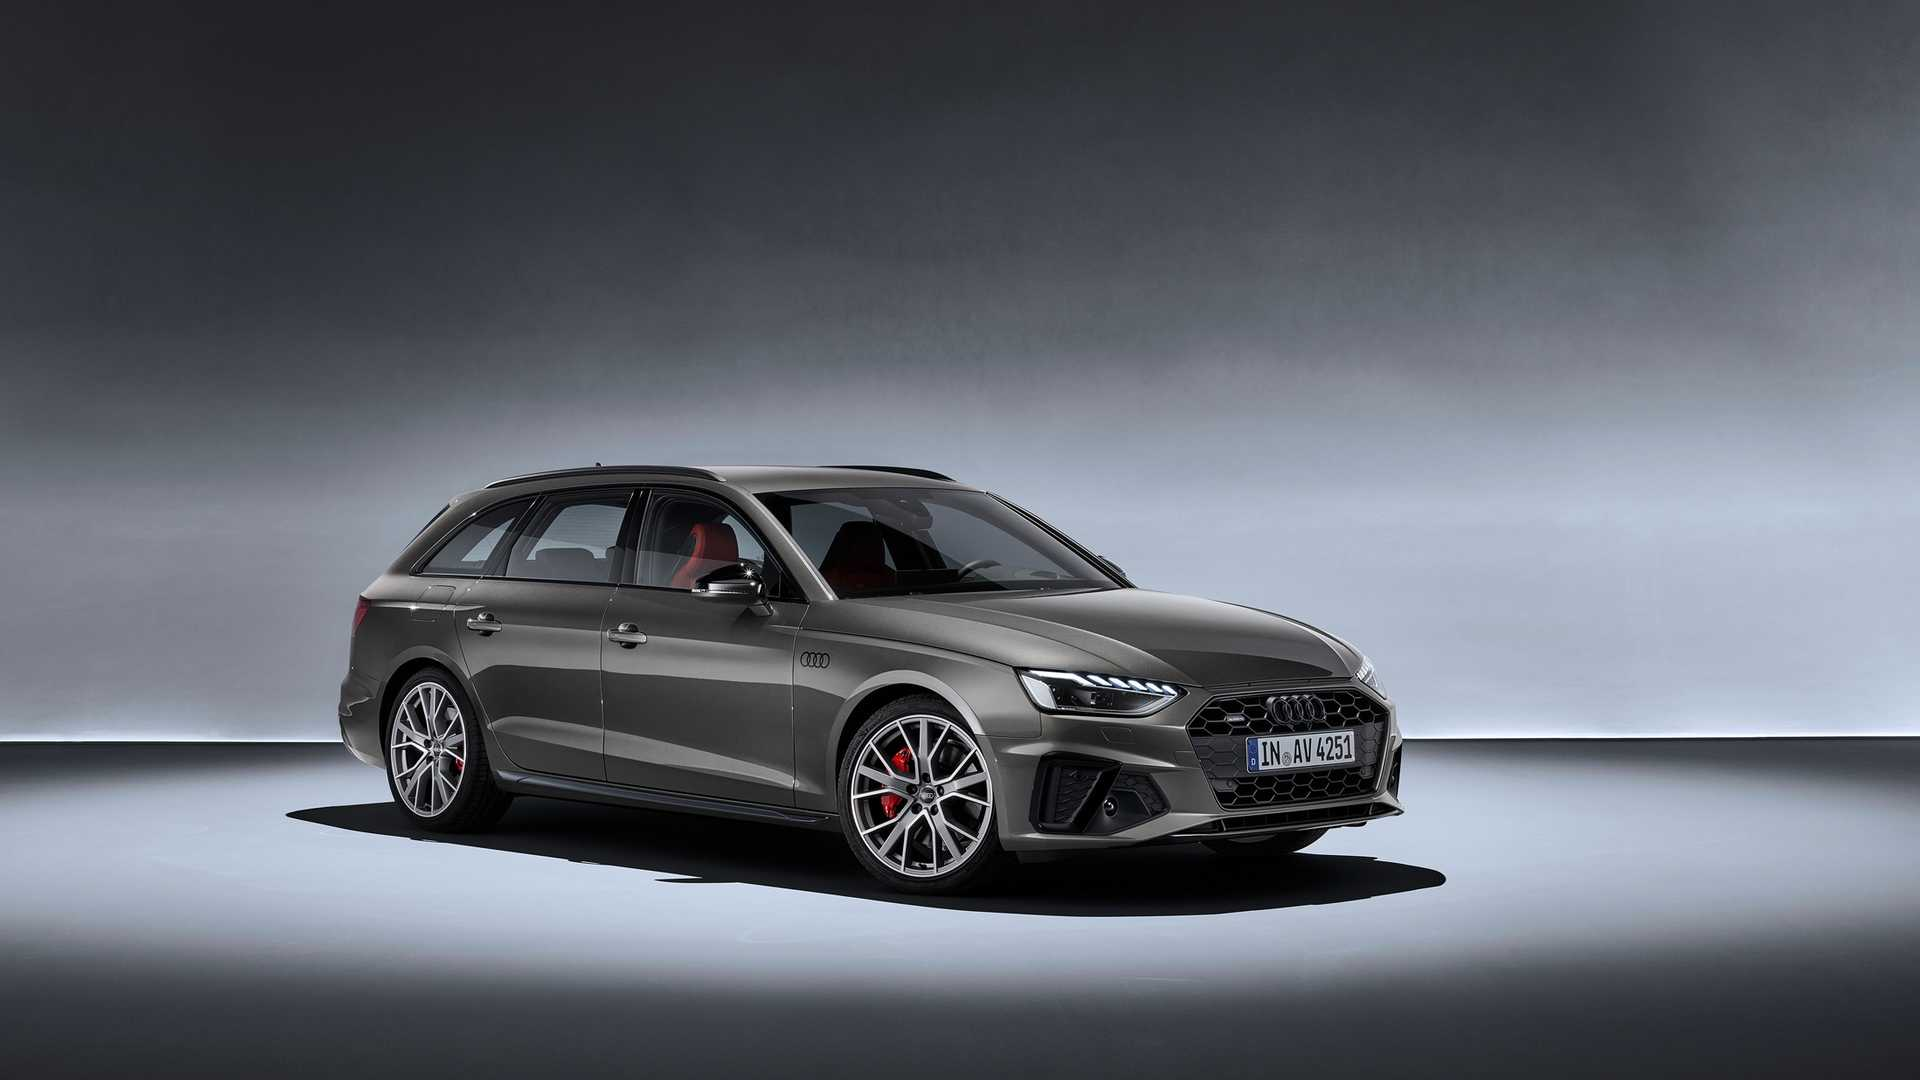 2020 Audi A4 Avant (Color: Terra Gray) Front Three-Quarter Wallpapers (7)